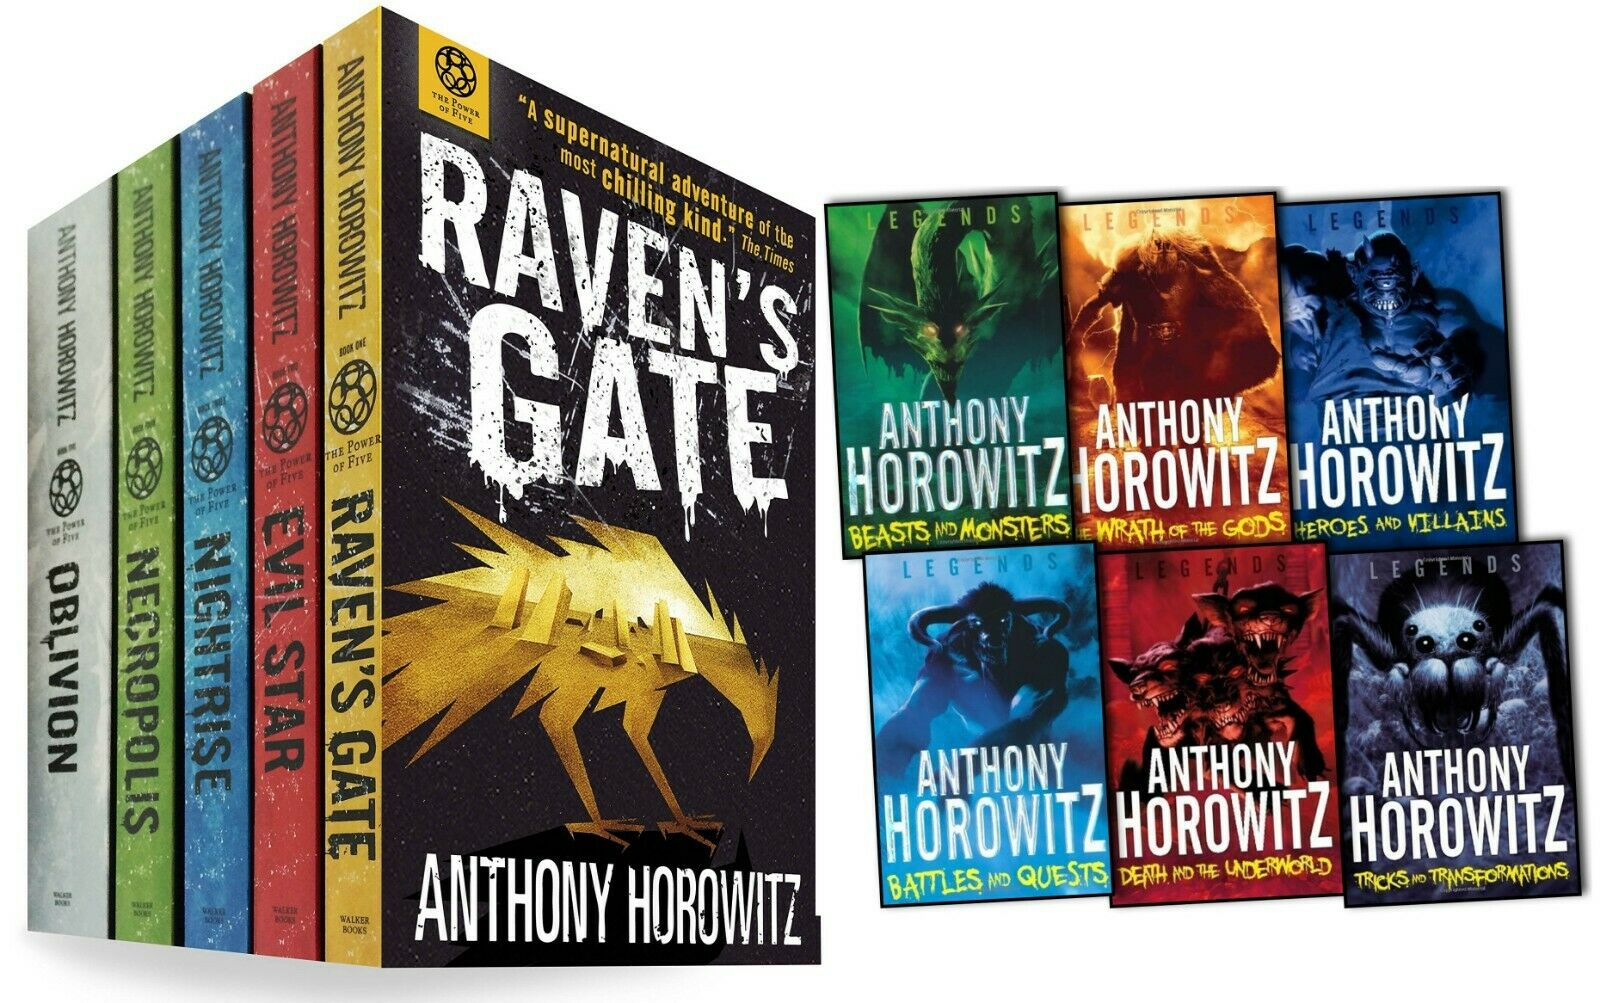 Anthony Horowitz Collection 11 Books Set The Legends And